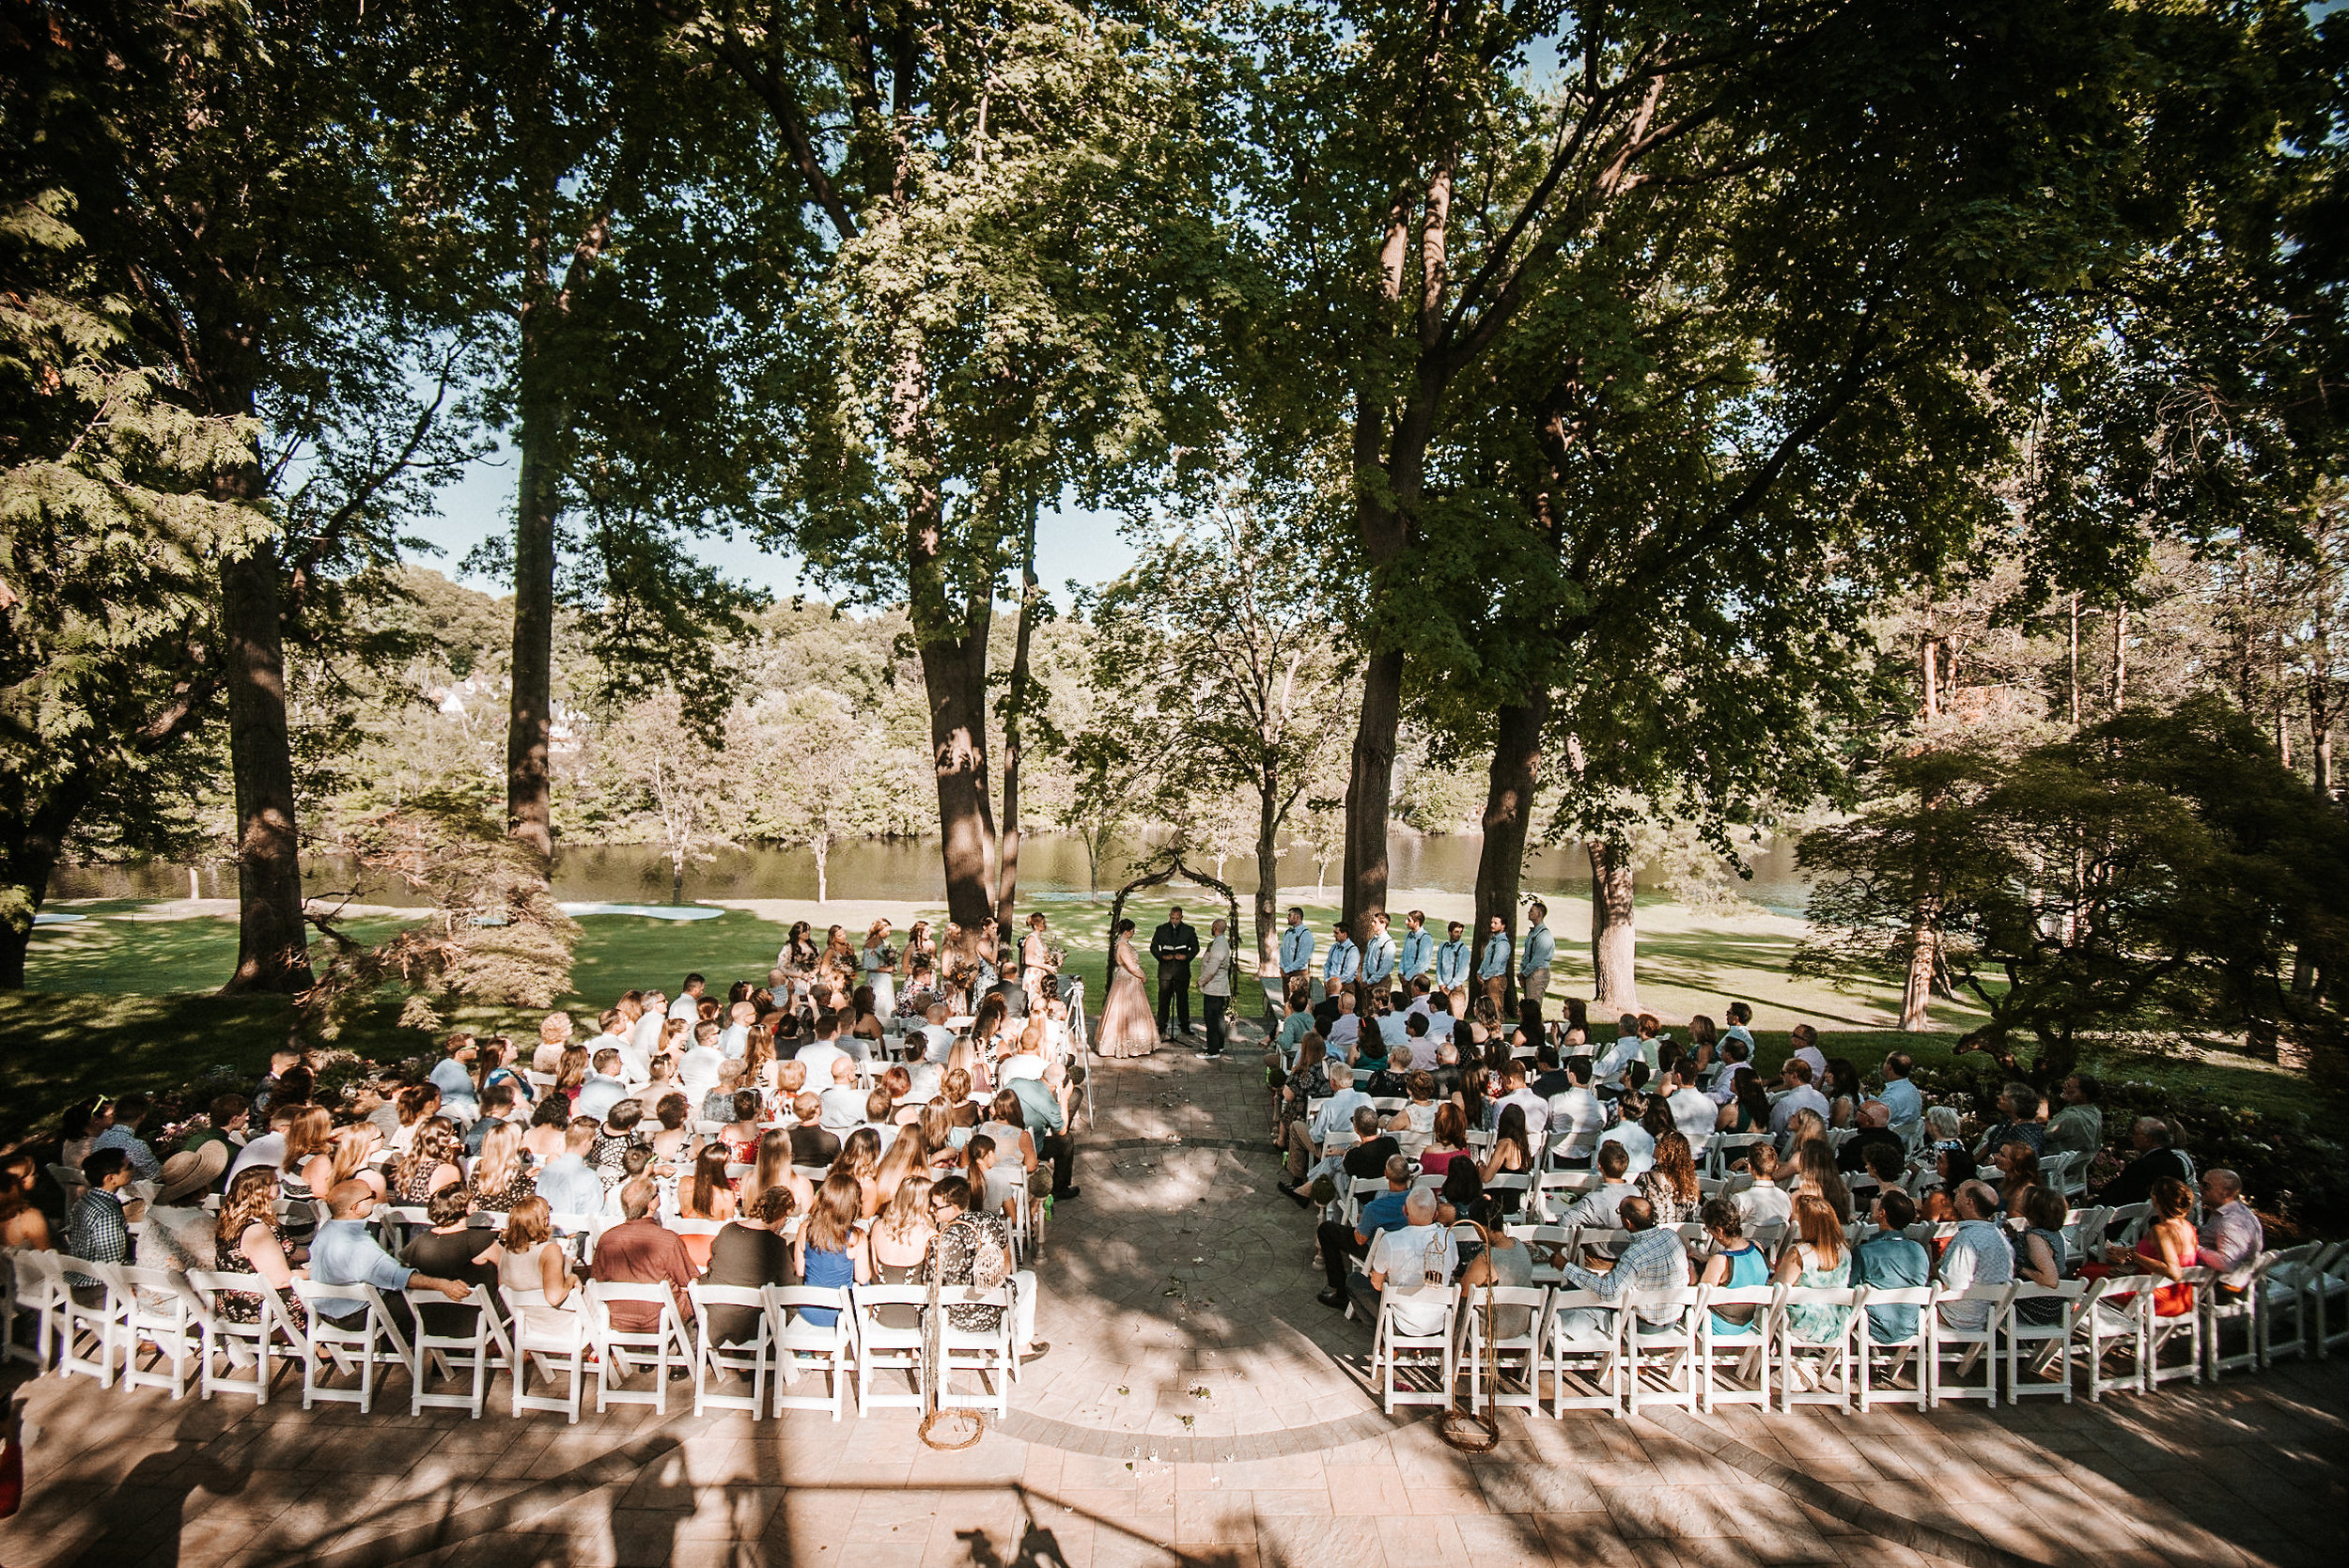 Shaded wedding ceremony space beside lake